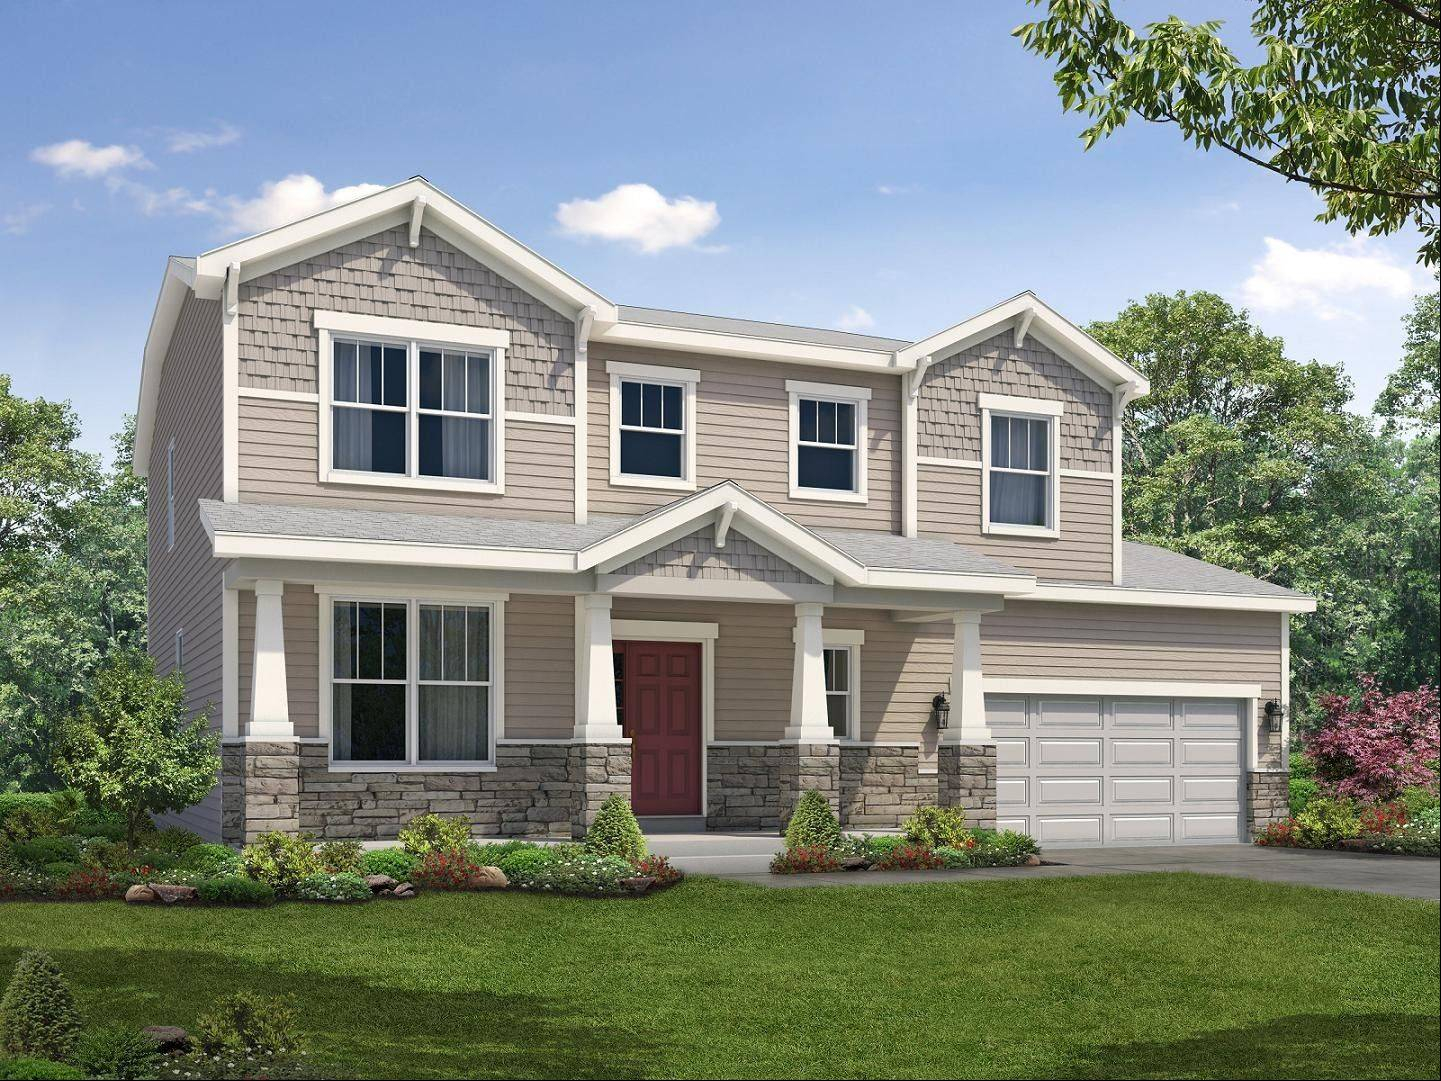 William Ryan Homes, based in Schaumburg, offers this Sheridan model.